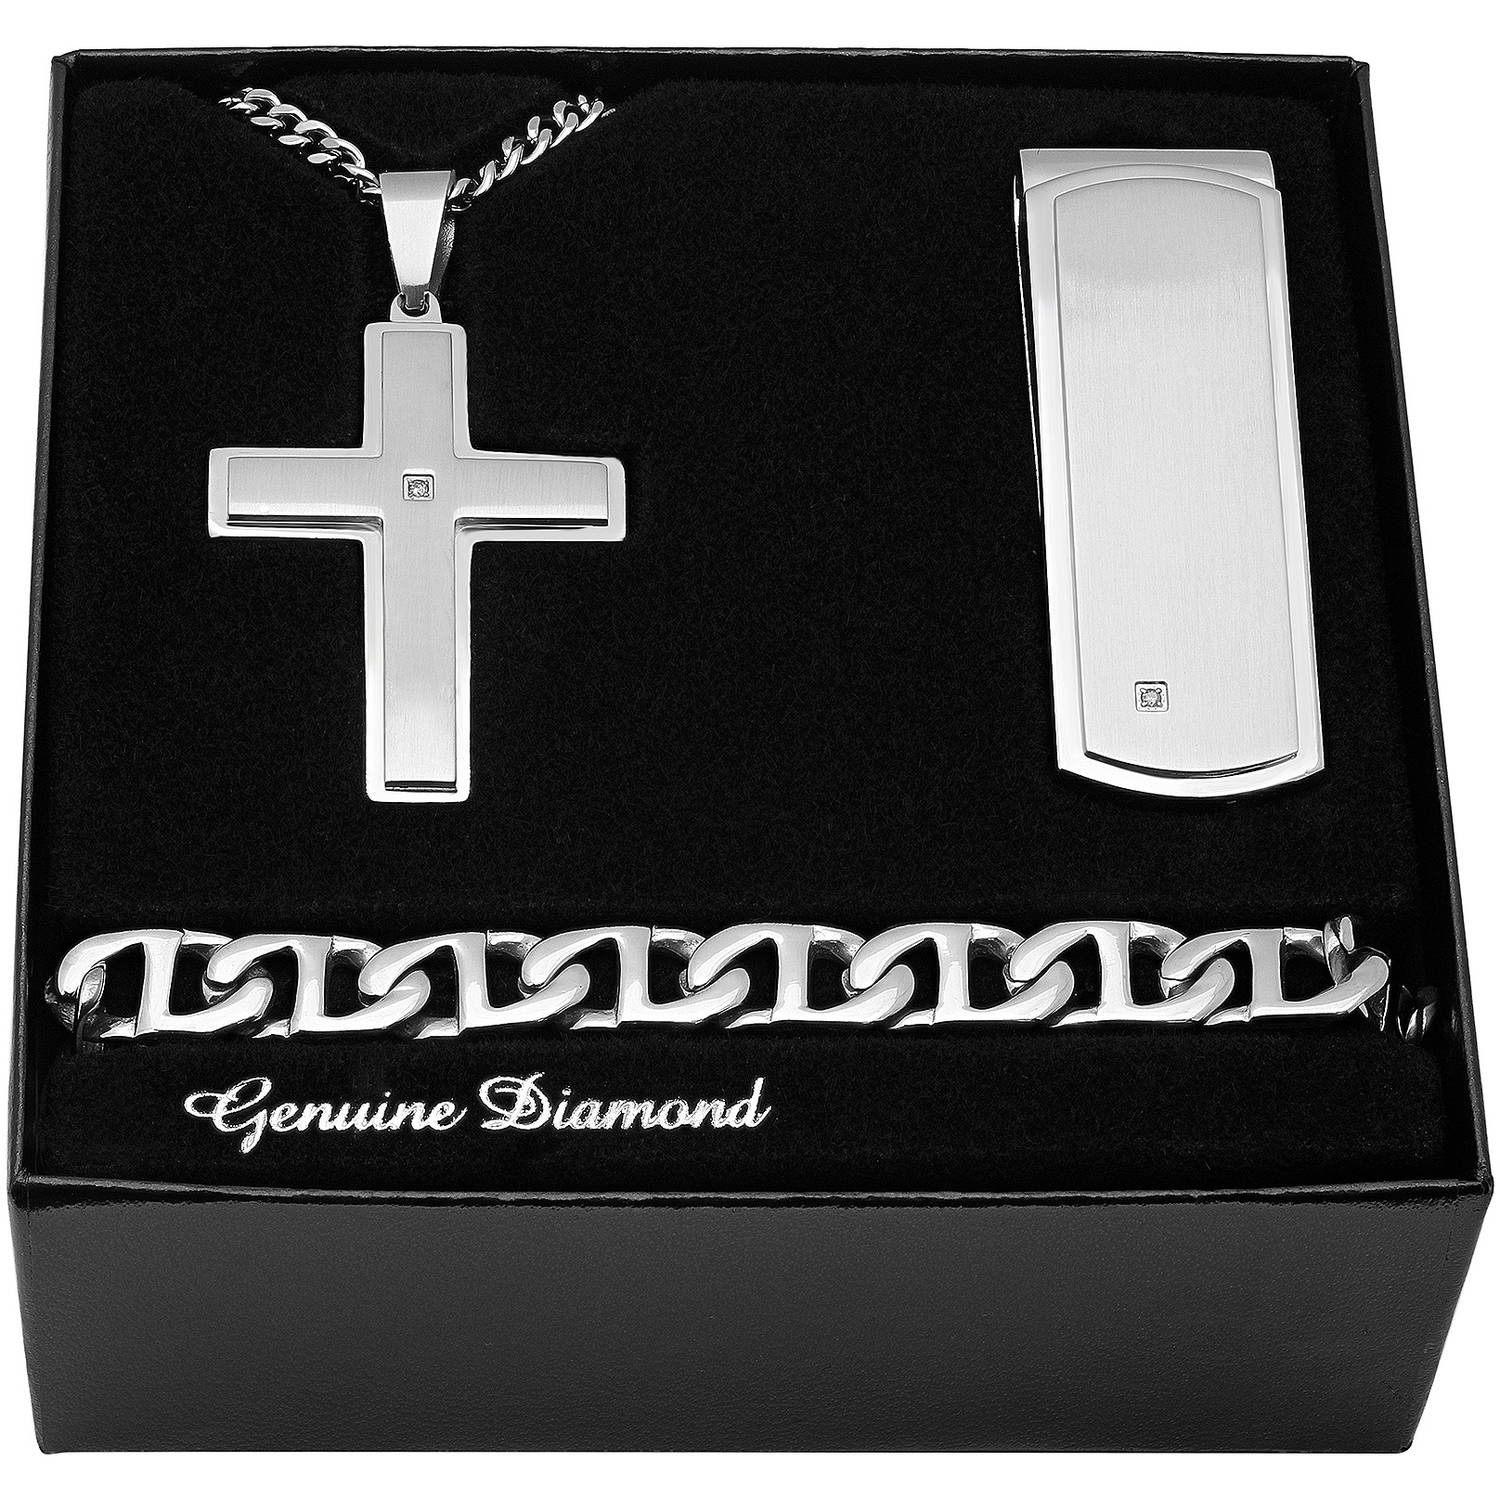 Men's Stainless Steel Diamond Accent Cross Pendant, Money Clip, Bracelet - Mens gift box set